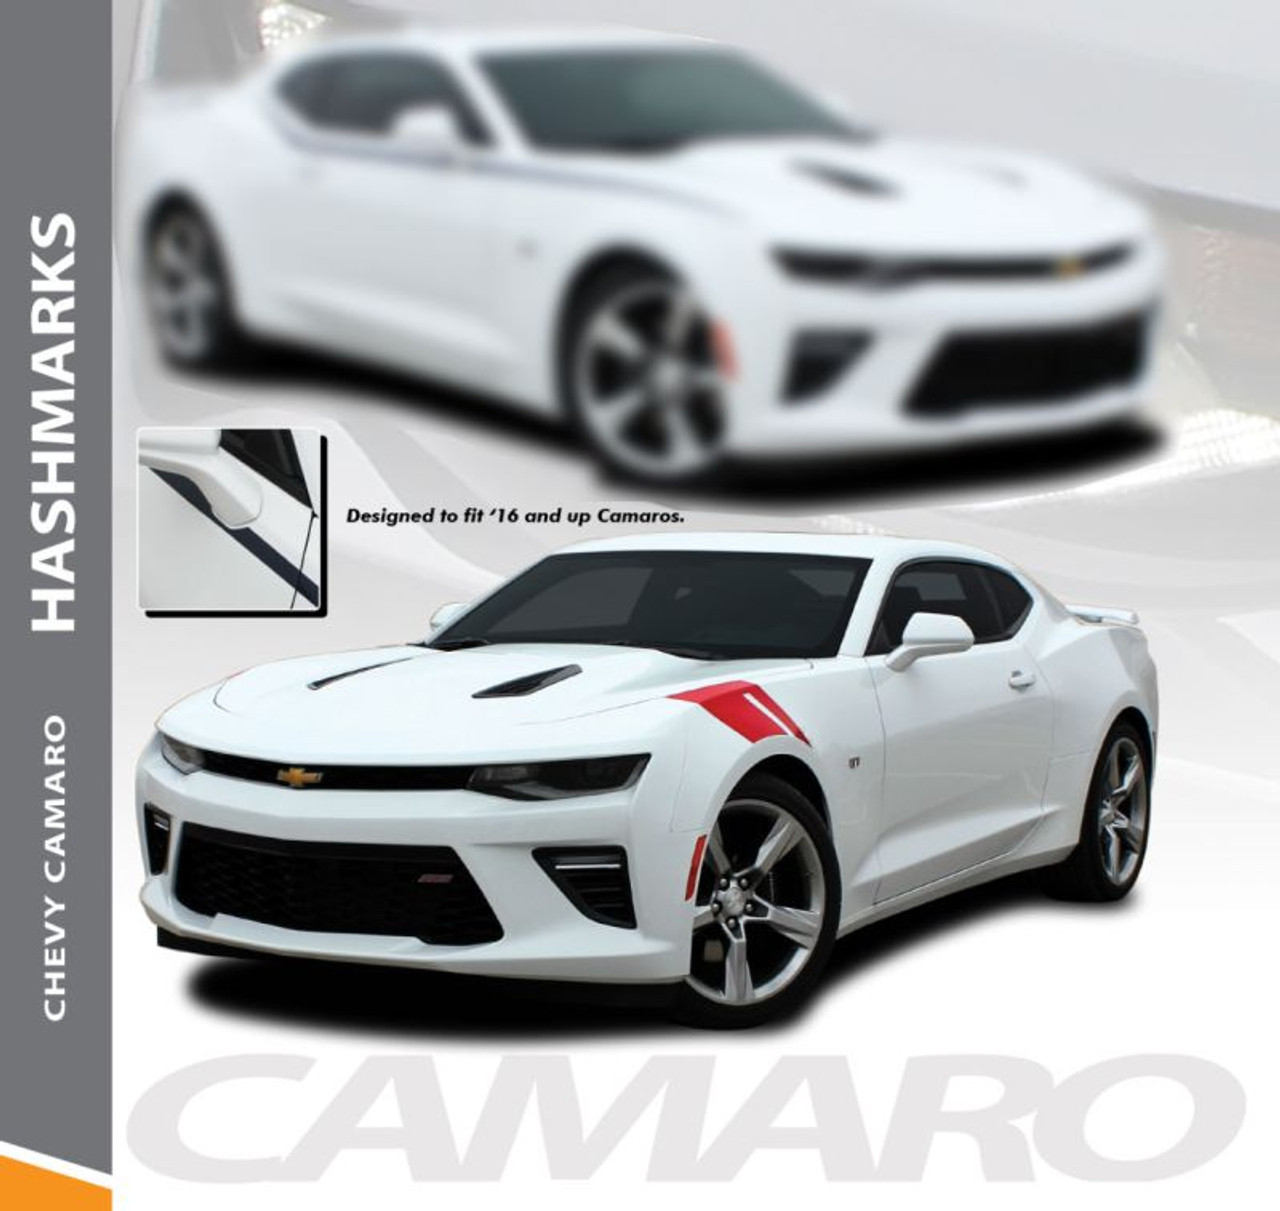 2016 2017 2018 Chevy Camaro Hood Stripes Hashmarks Double 3M Vinyl Graphic Decal